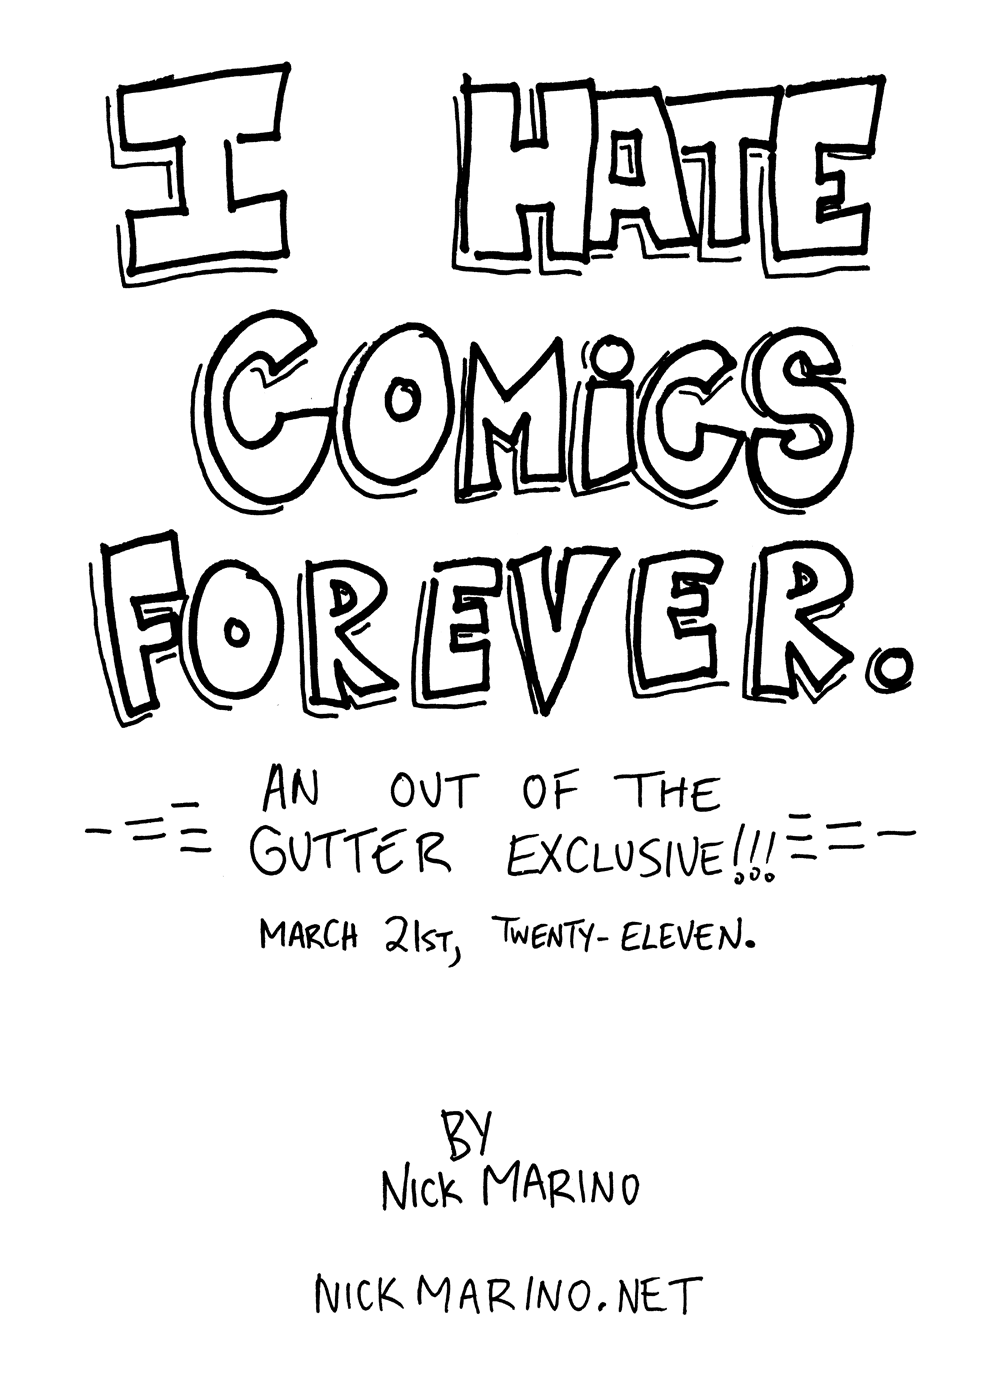 nick marino i hate ics forever Senior Class Shirts i m going to raffle off the one of a kind only one on paper original art of the ic tonight at the talk so get yer butts out to library if you wanna take